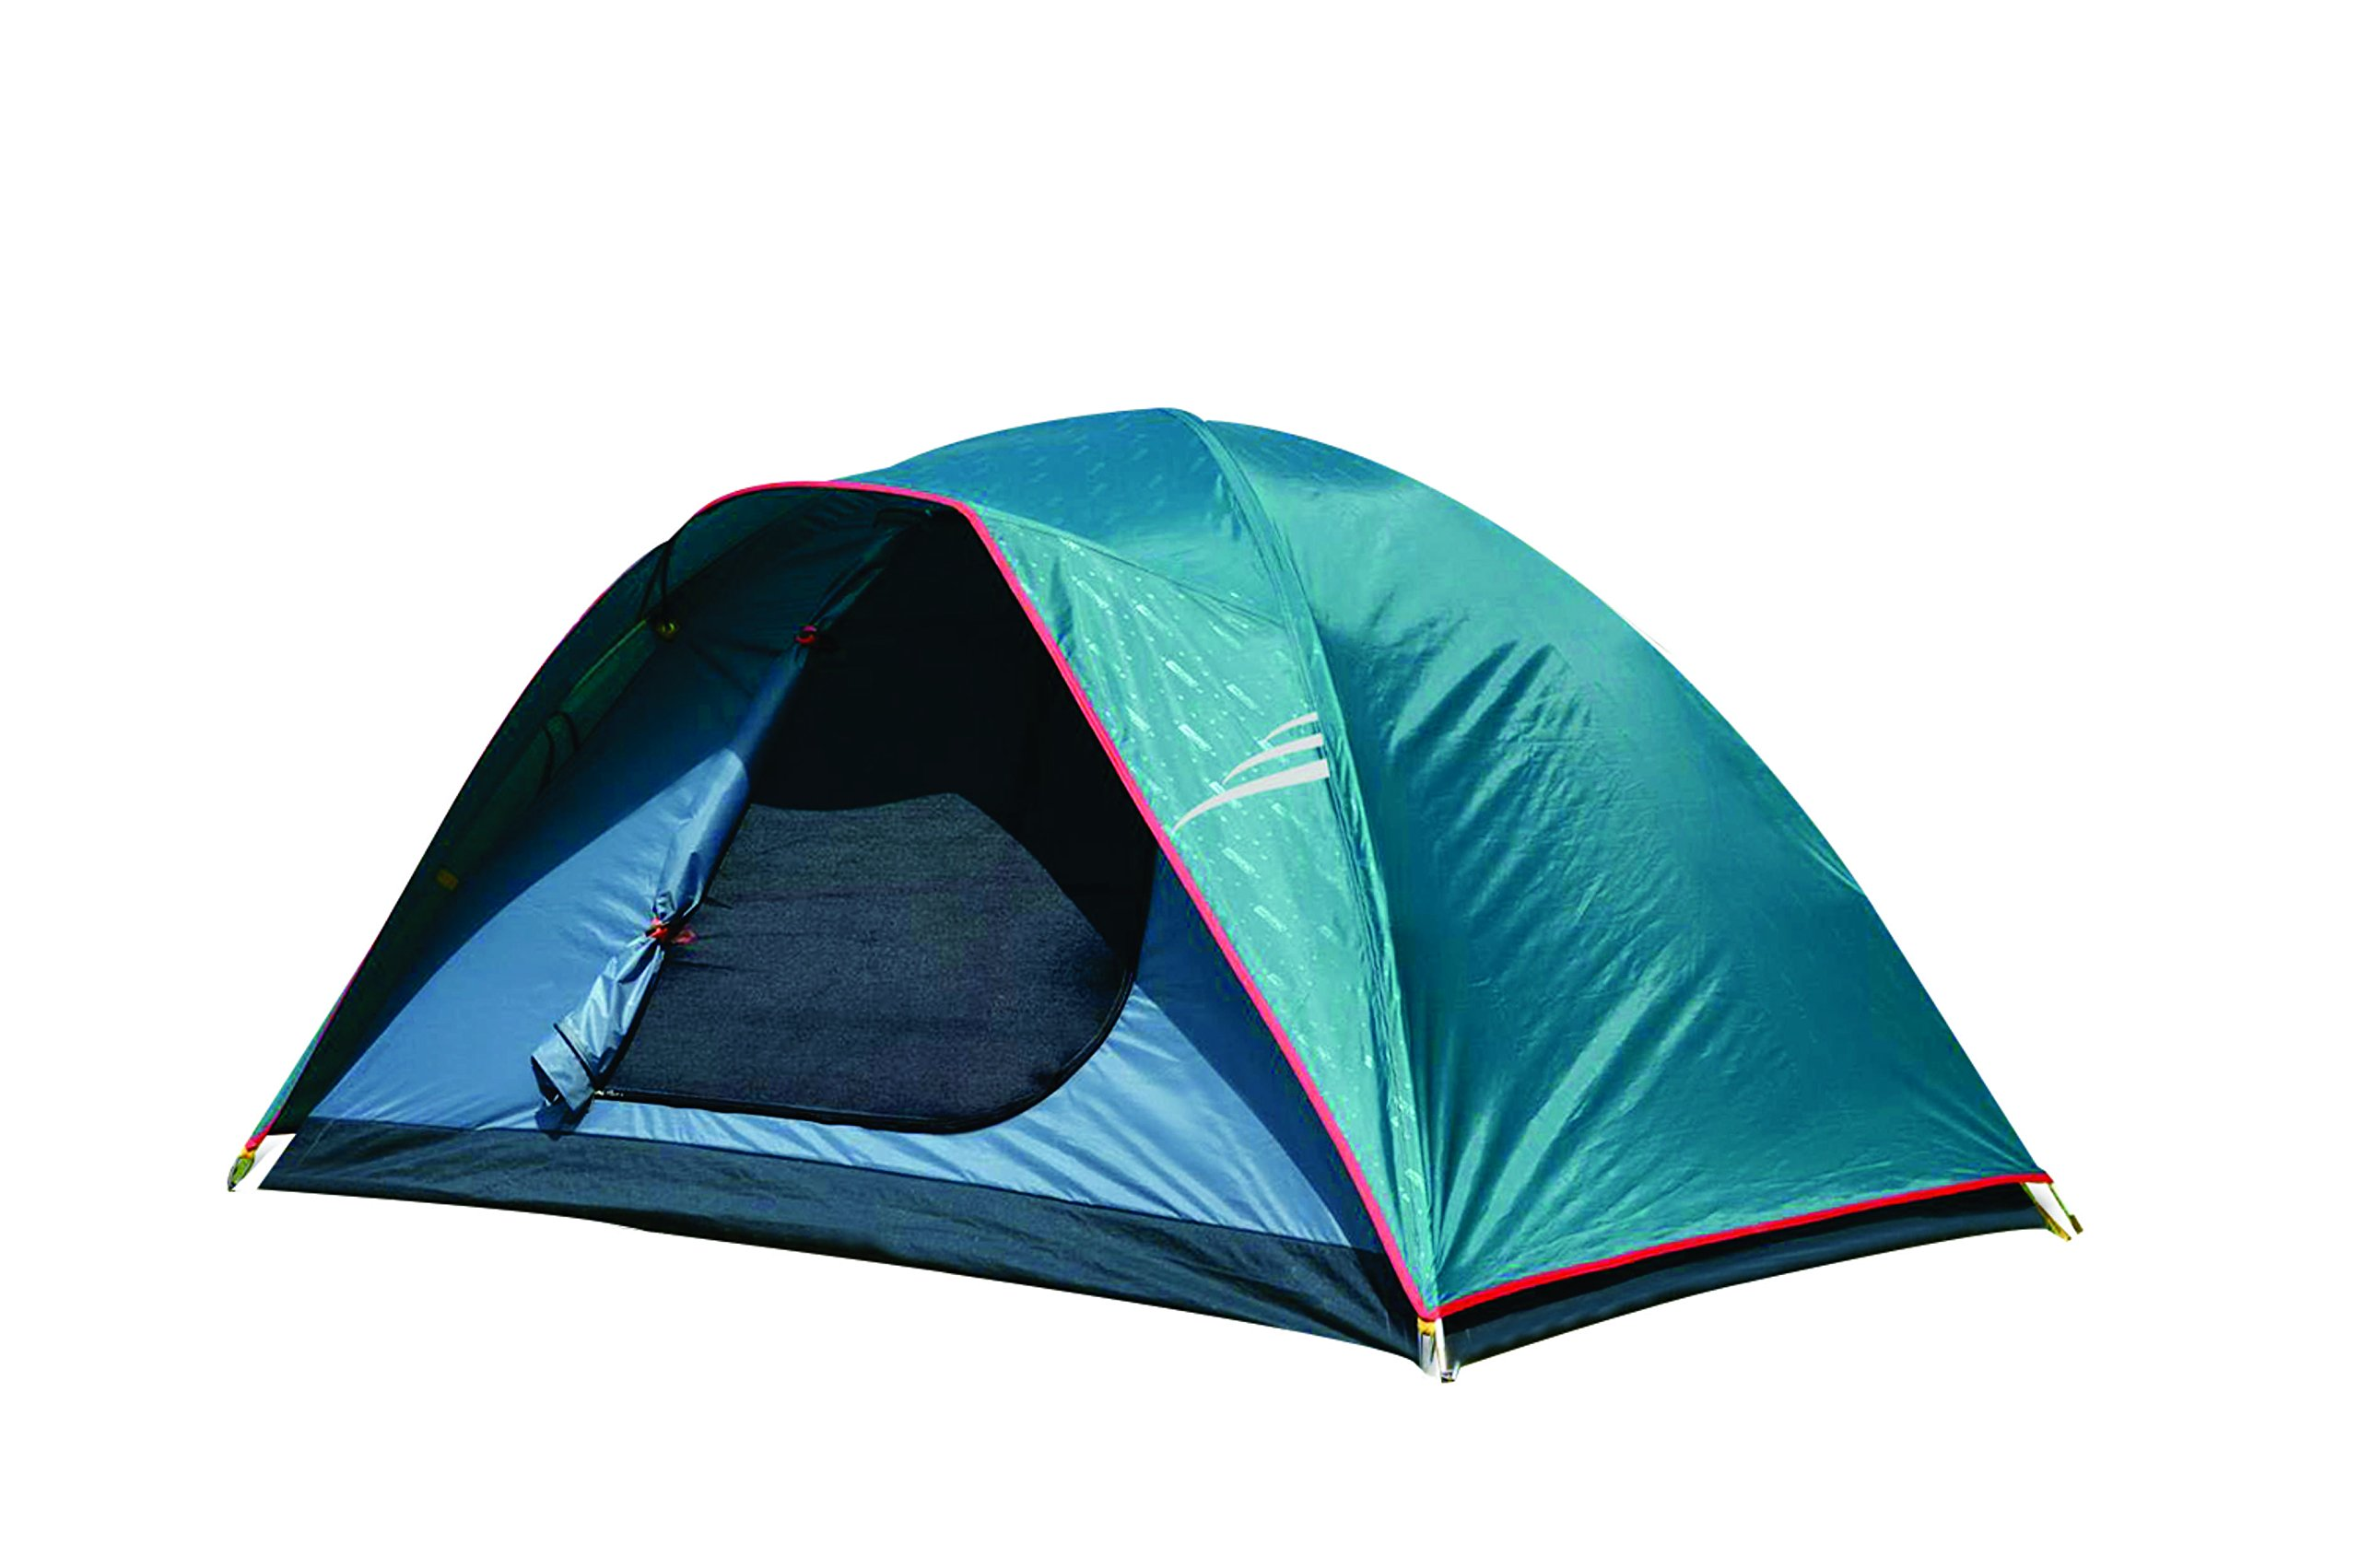 NTK Oregon GT 8 to 9 Person 10 by 12 Foot Outdoor Dome Family Camping Tent 100% Waterproof 2500mm, Easy Assembly, Durable Fabric Full Coverage Rainfly - Micro Mosquito Mesh for Maximum Comfort.